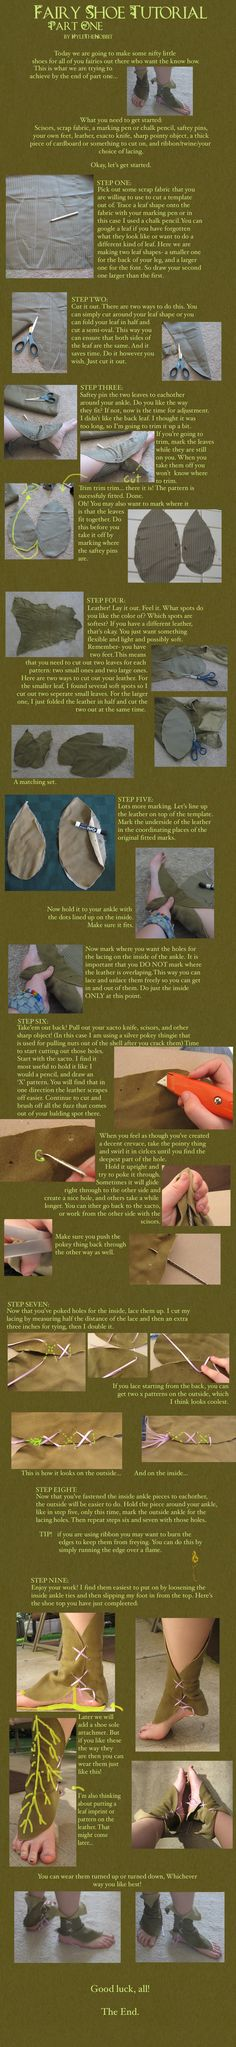 Fairy Shoe Tutorial: Part 1 by KyleTheHobbit